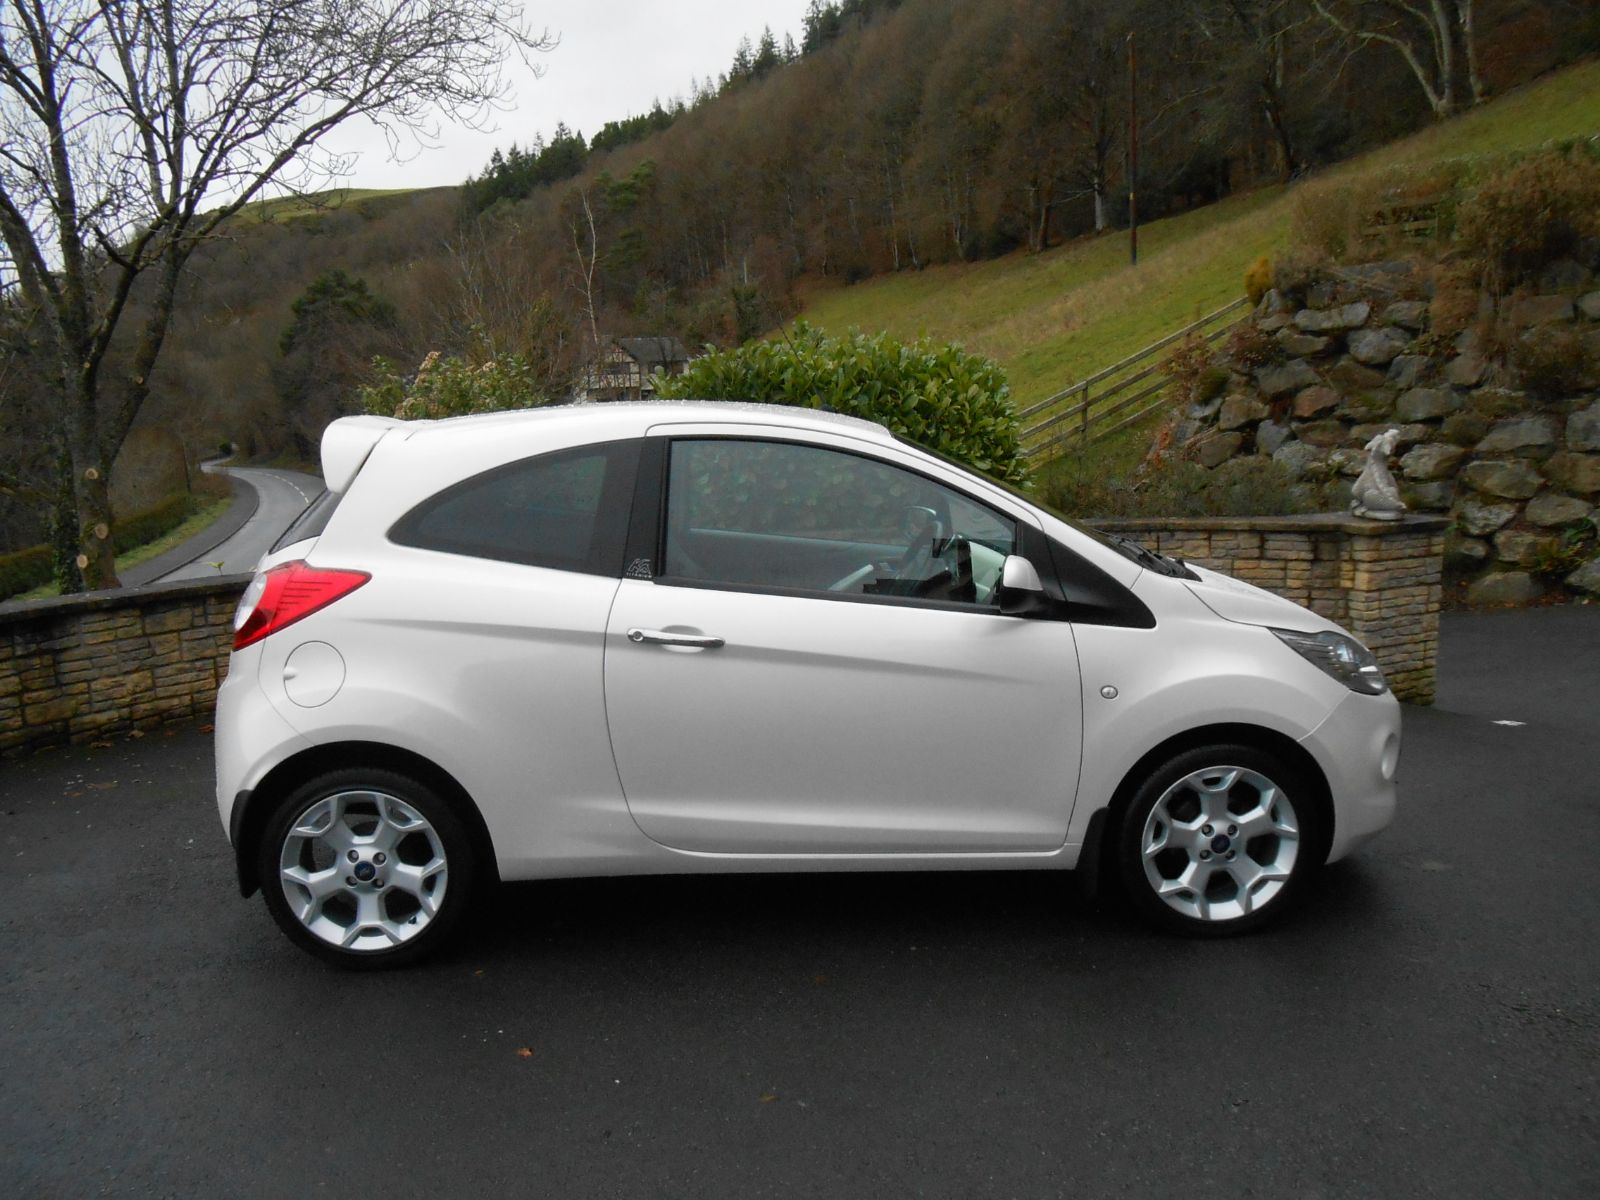 ford ka 1 2 titanium car for sale llanidloes powys mid wales kevin jones cars used cars specialist